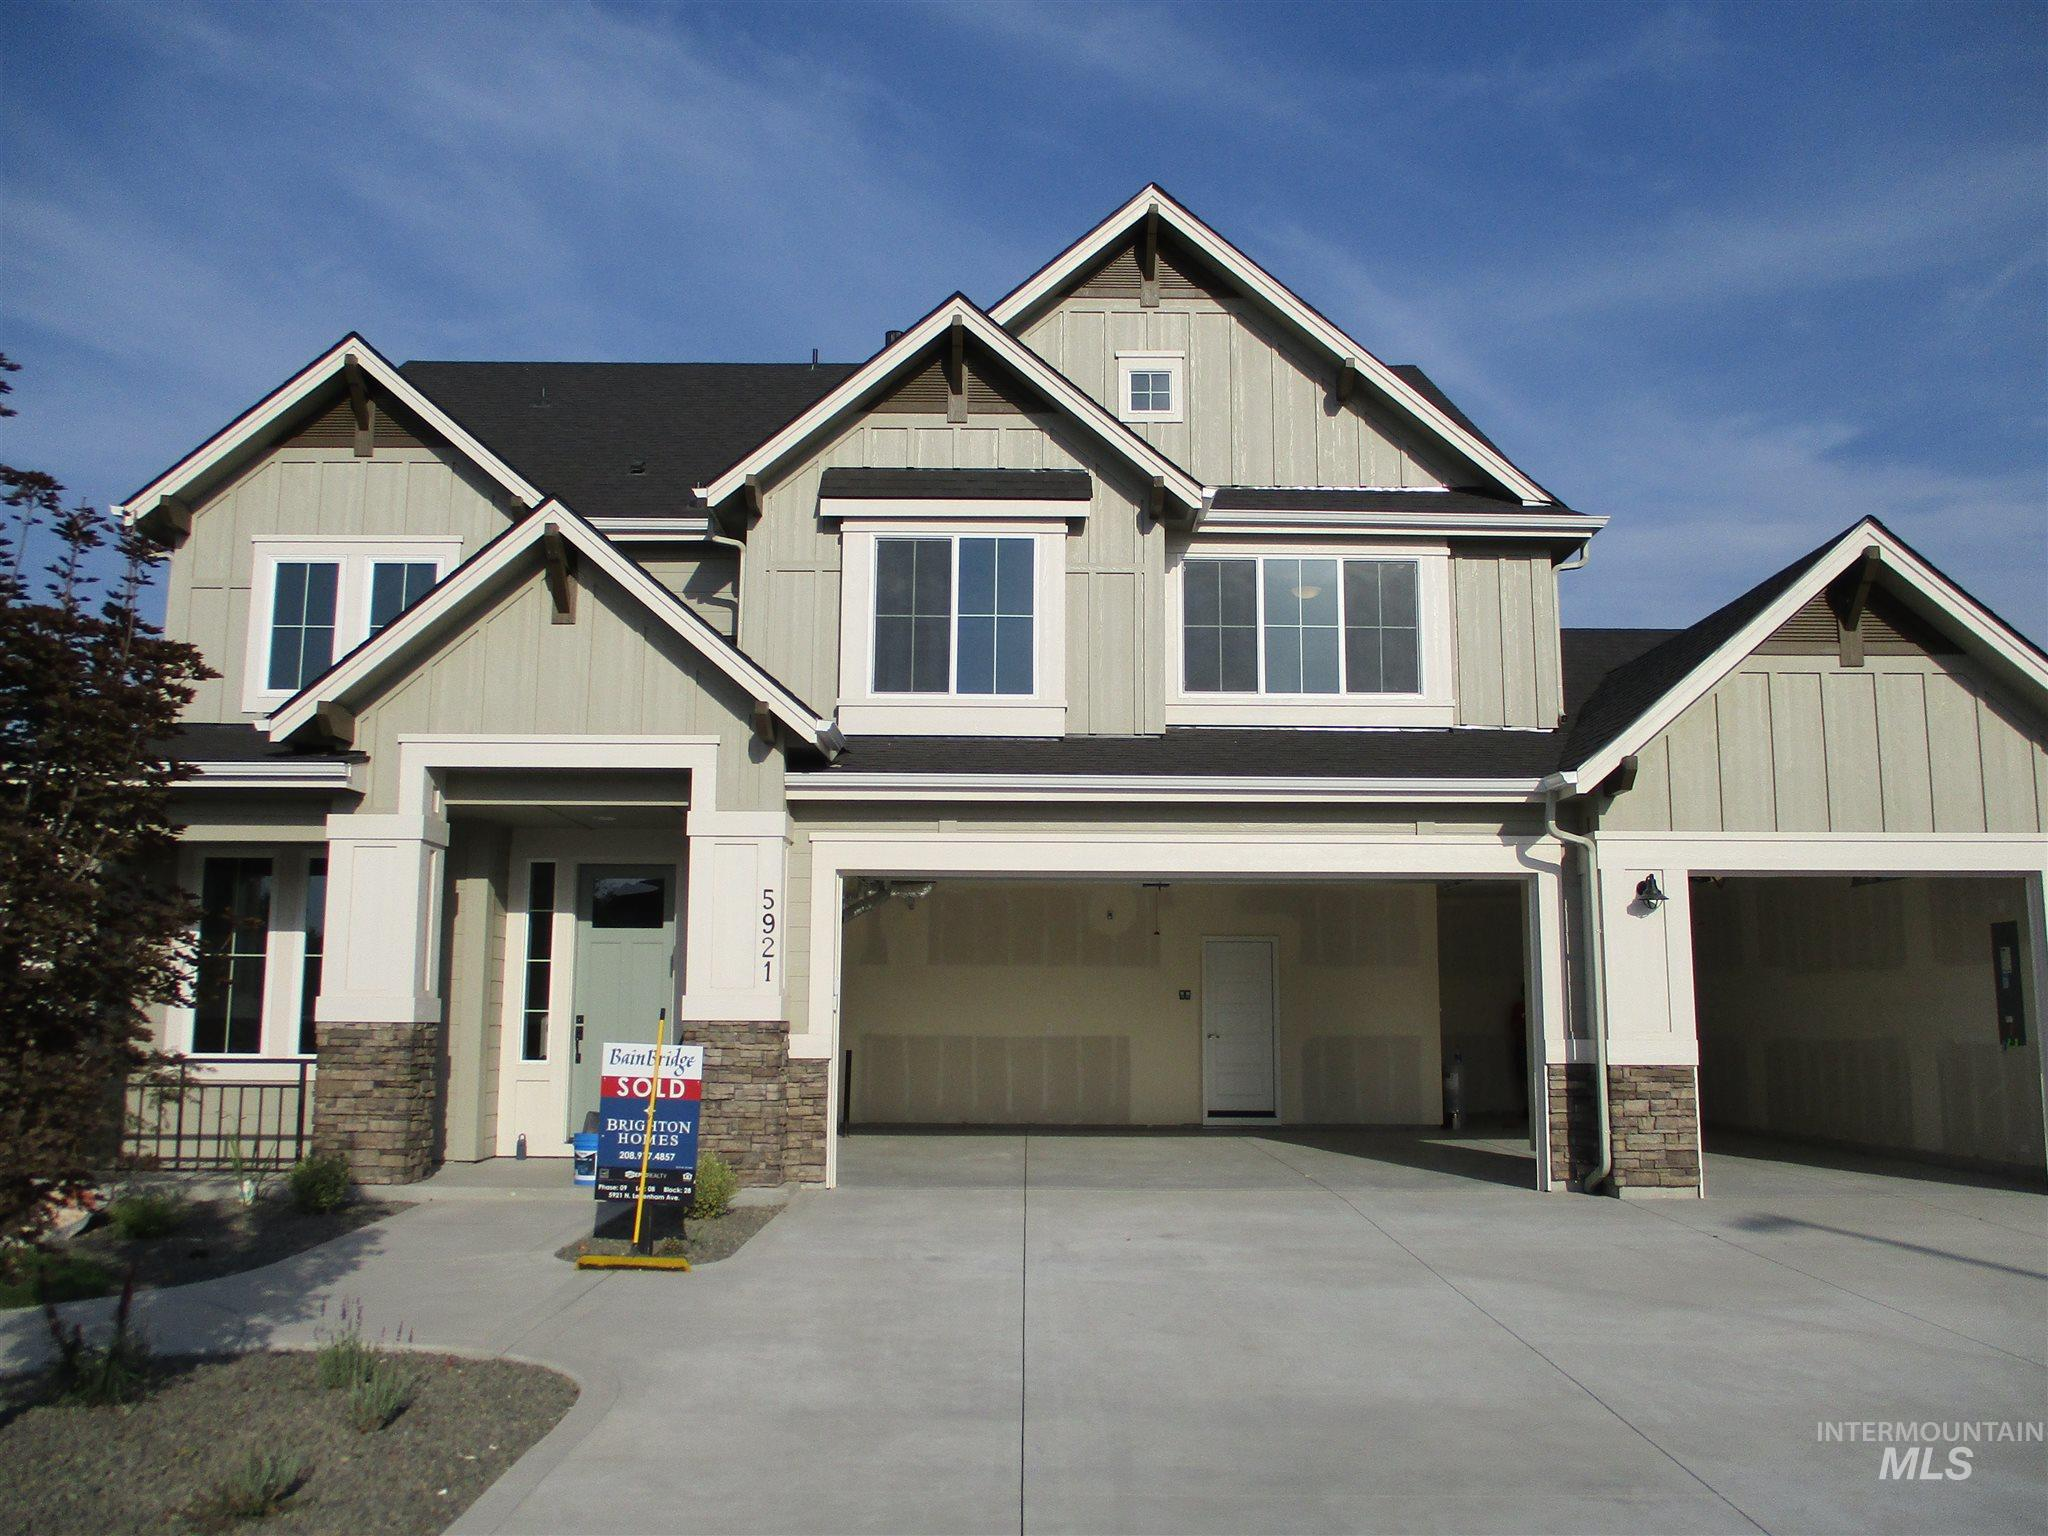 The Bayview by Brighton Homes. A stunning EnergyStar home with a standard HERS rating of 64! This home is perfect for  entertaining with the open and bright layout. With 10ft. ceilings in the family room, and an amazing kitchen with stainless Bosch appliance package, this home is a real winner.